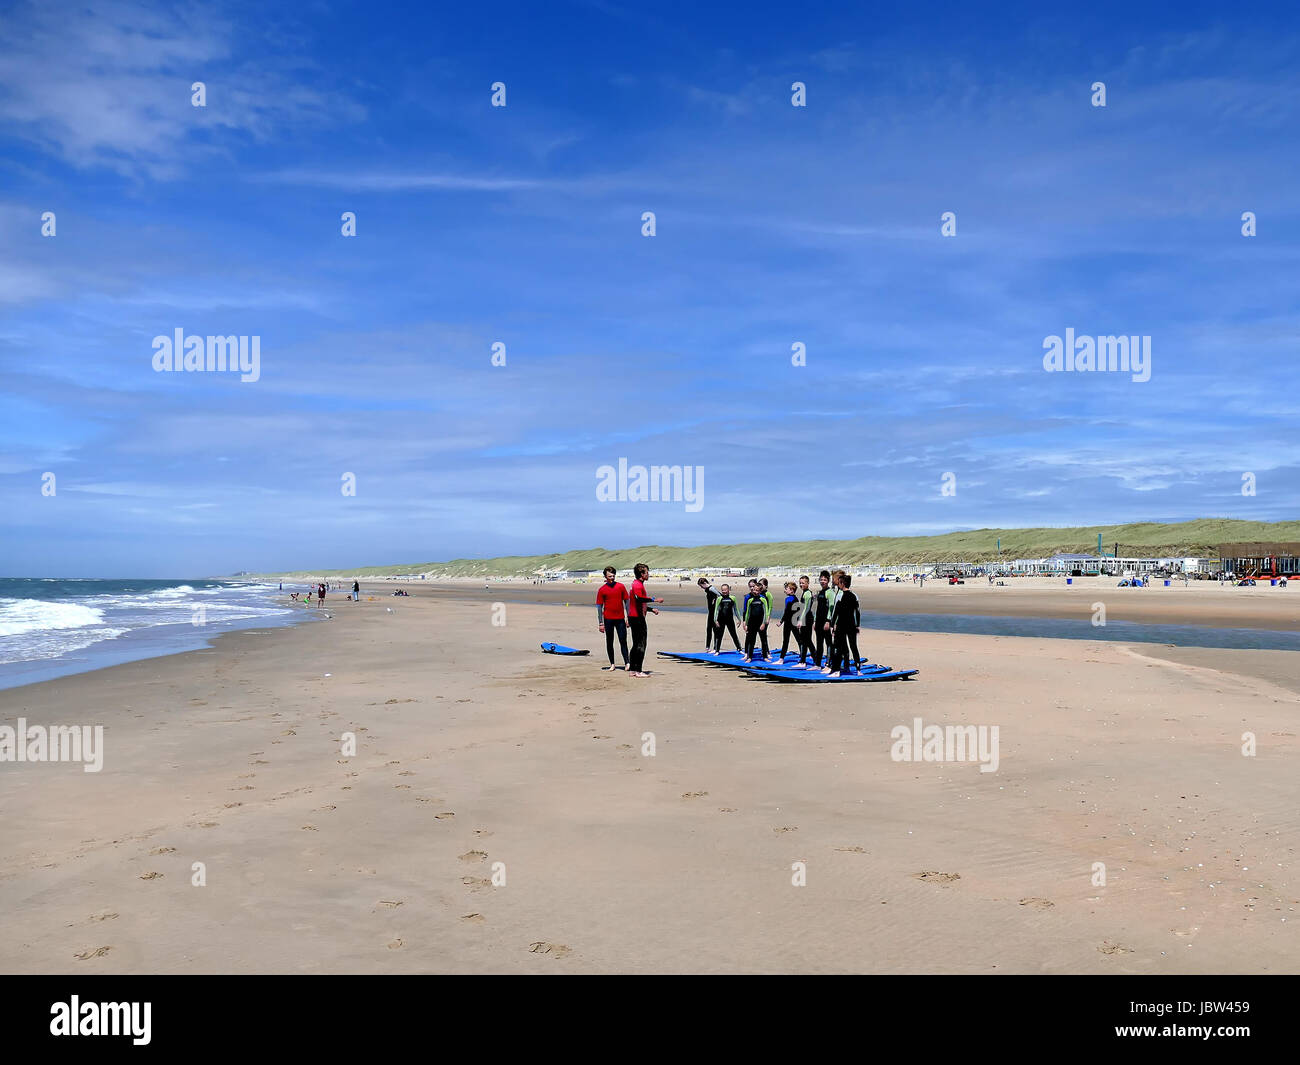 CASTRICUM, THE NETHERLANDS - JUNE 10, 2017: Young teenagers having fun with surfing lessons practising on the beach - Stock Image